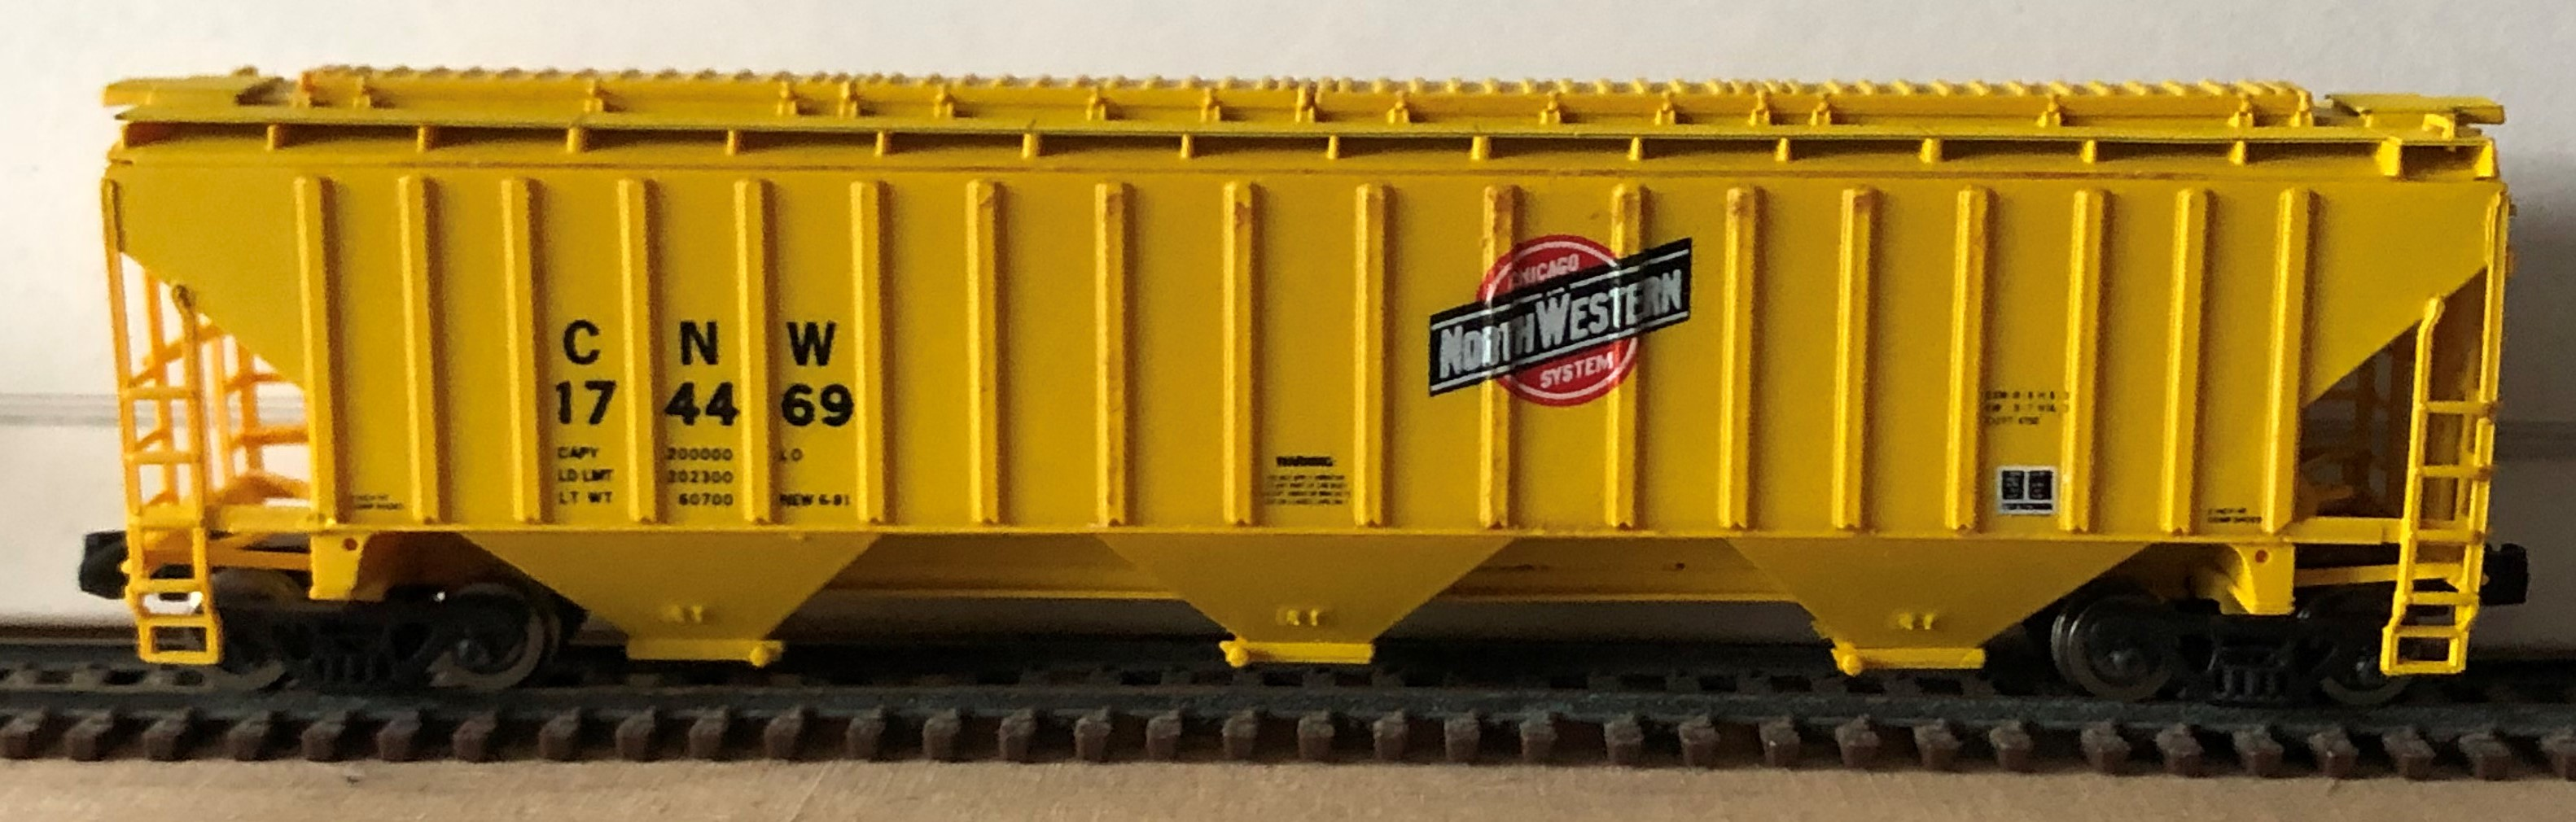 N Scale - Pacific Western Rail Systems - 1022D - Covered Hopper, 3-Bay, Thrall 4750 - Chicago & North Western - 174469